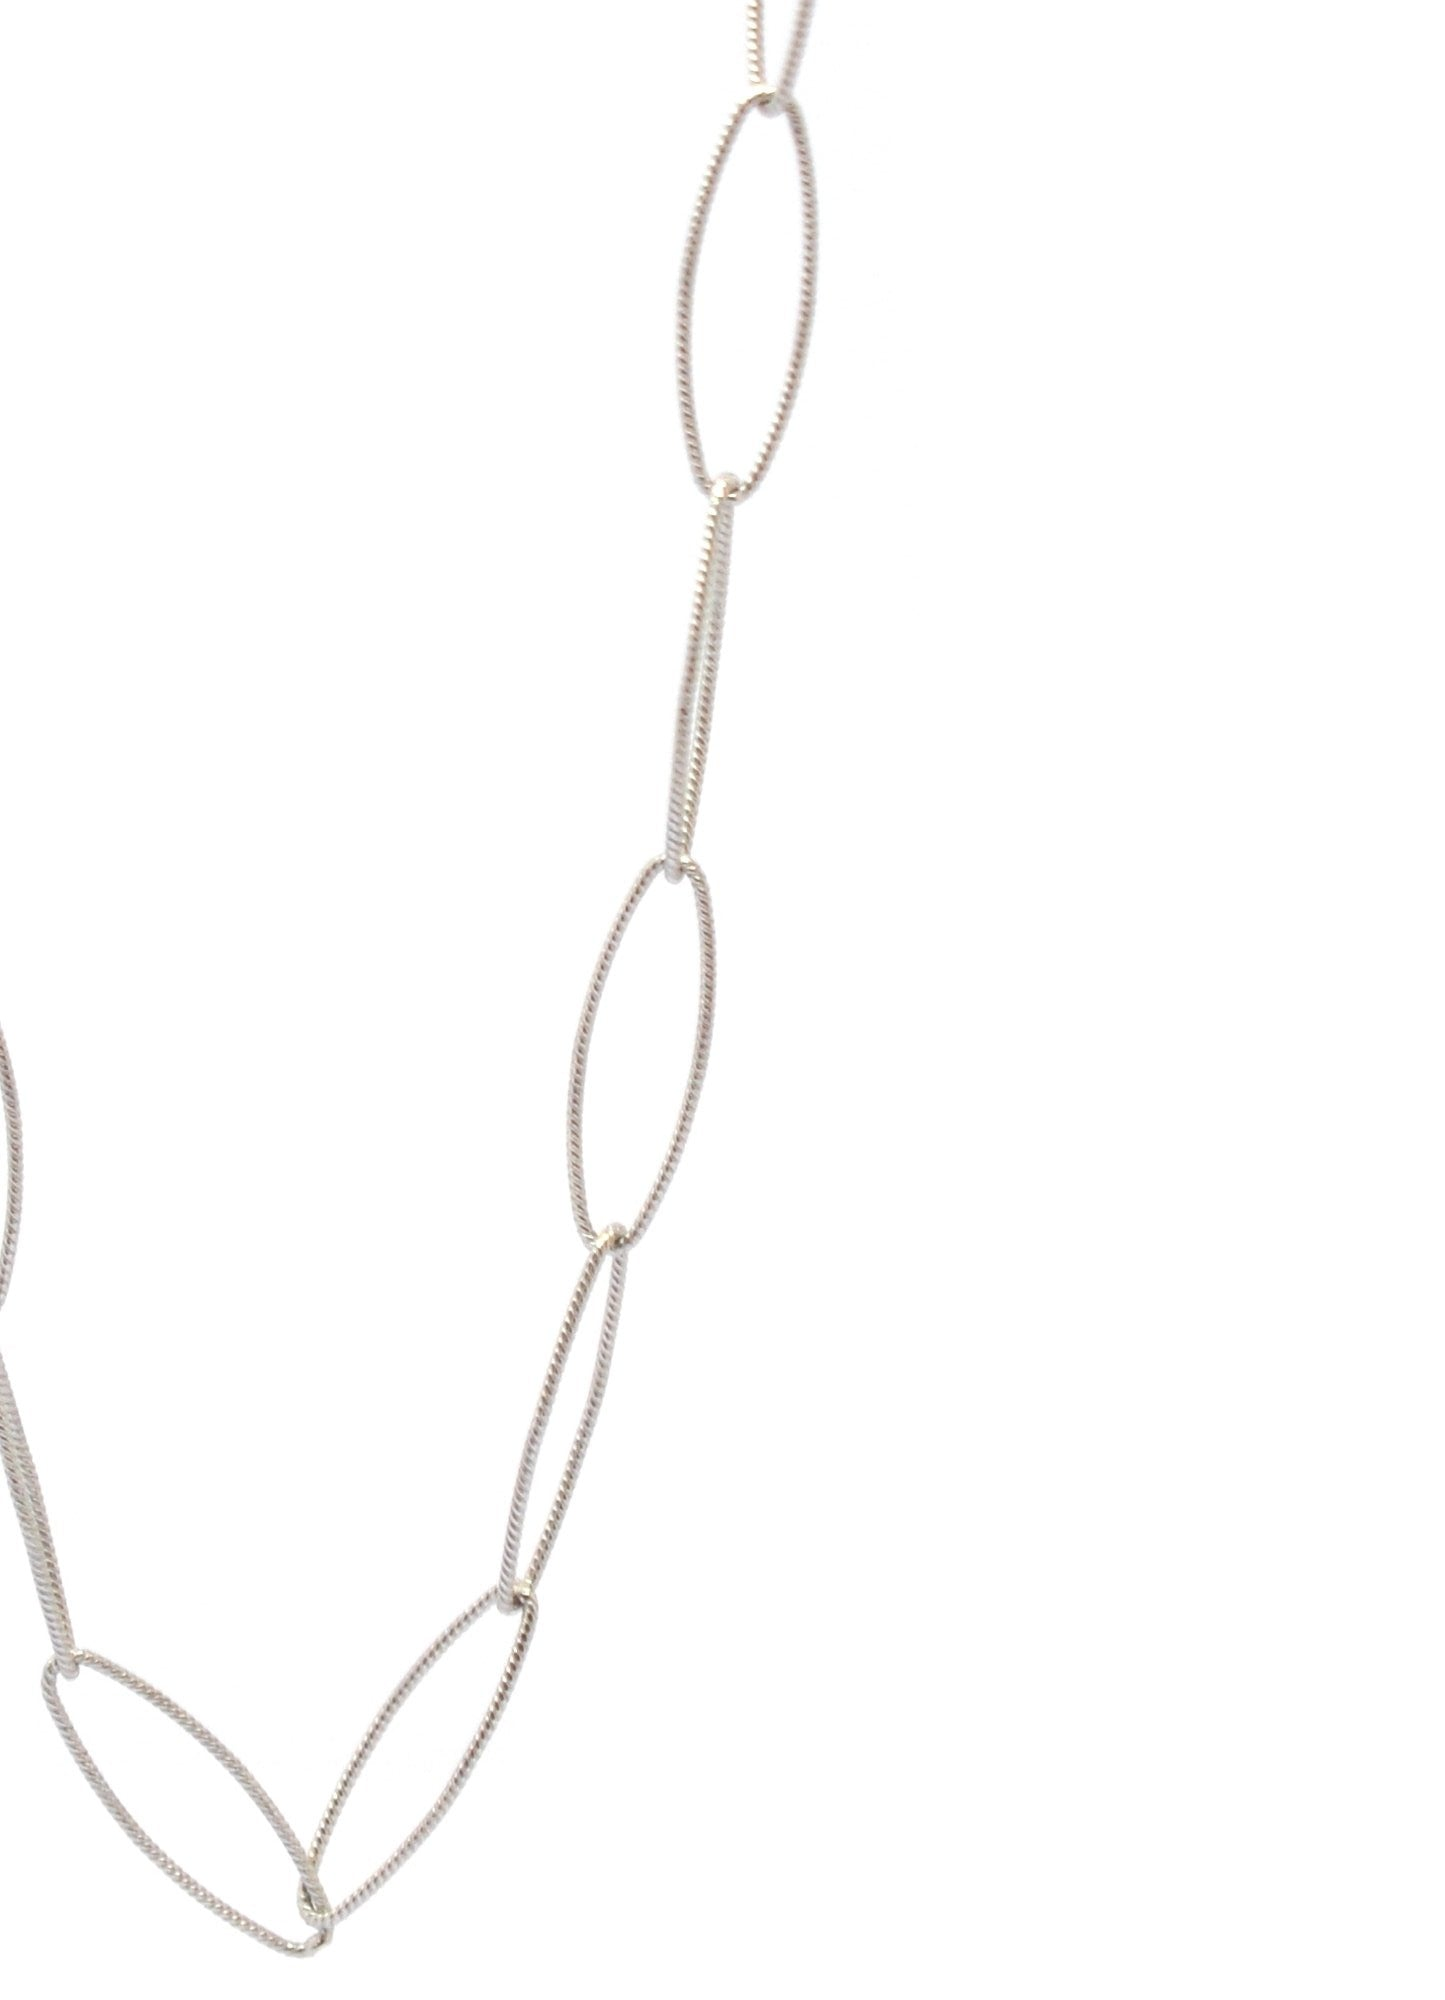 LARGE LINK CHAIN WITH JEWEL TABLET | SILVER